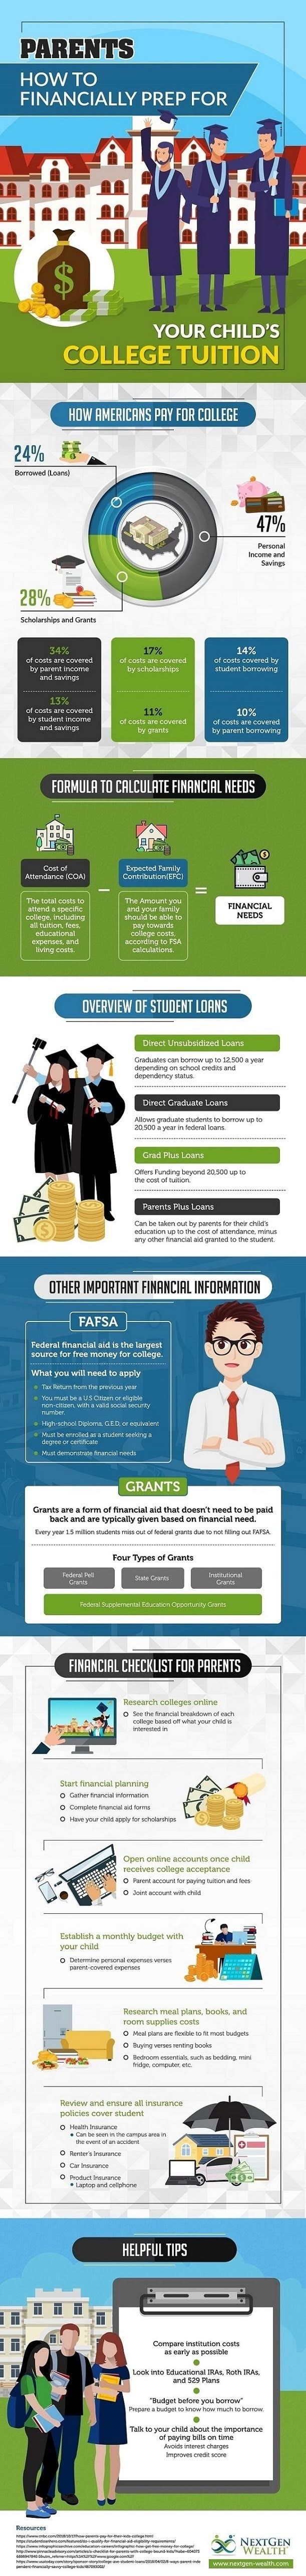 The best advice to save college cash #infographic </textarea> </div> </div> <div class=